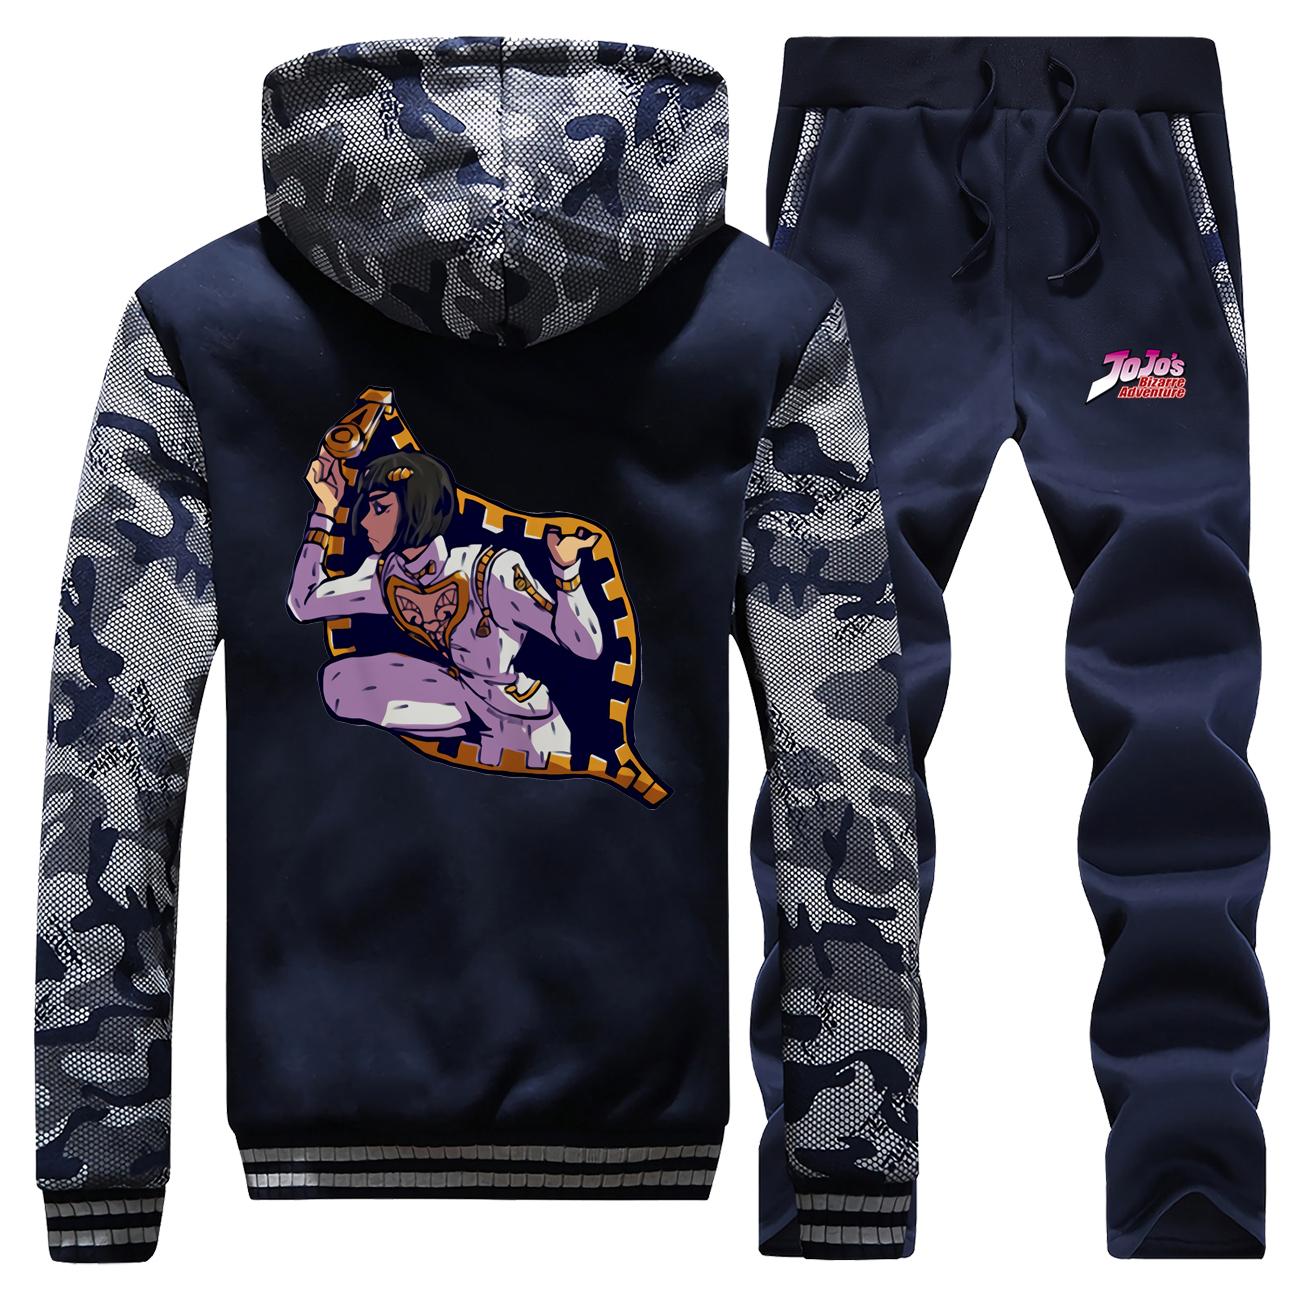 Anime Harajuku Hoodies Suit Winter Fleece Men Sweatshirt JoJo Bizarre Adventure Graphic Tracksuit Mens Jacket+Pants 2 Piece Sets